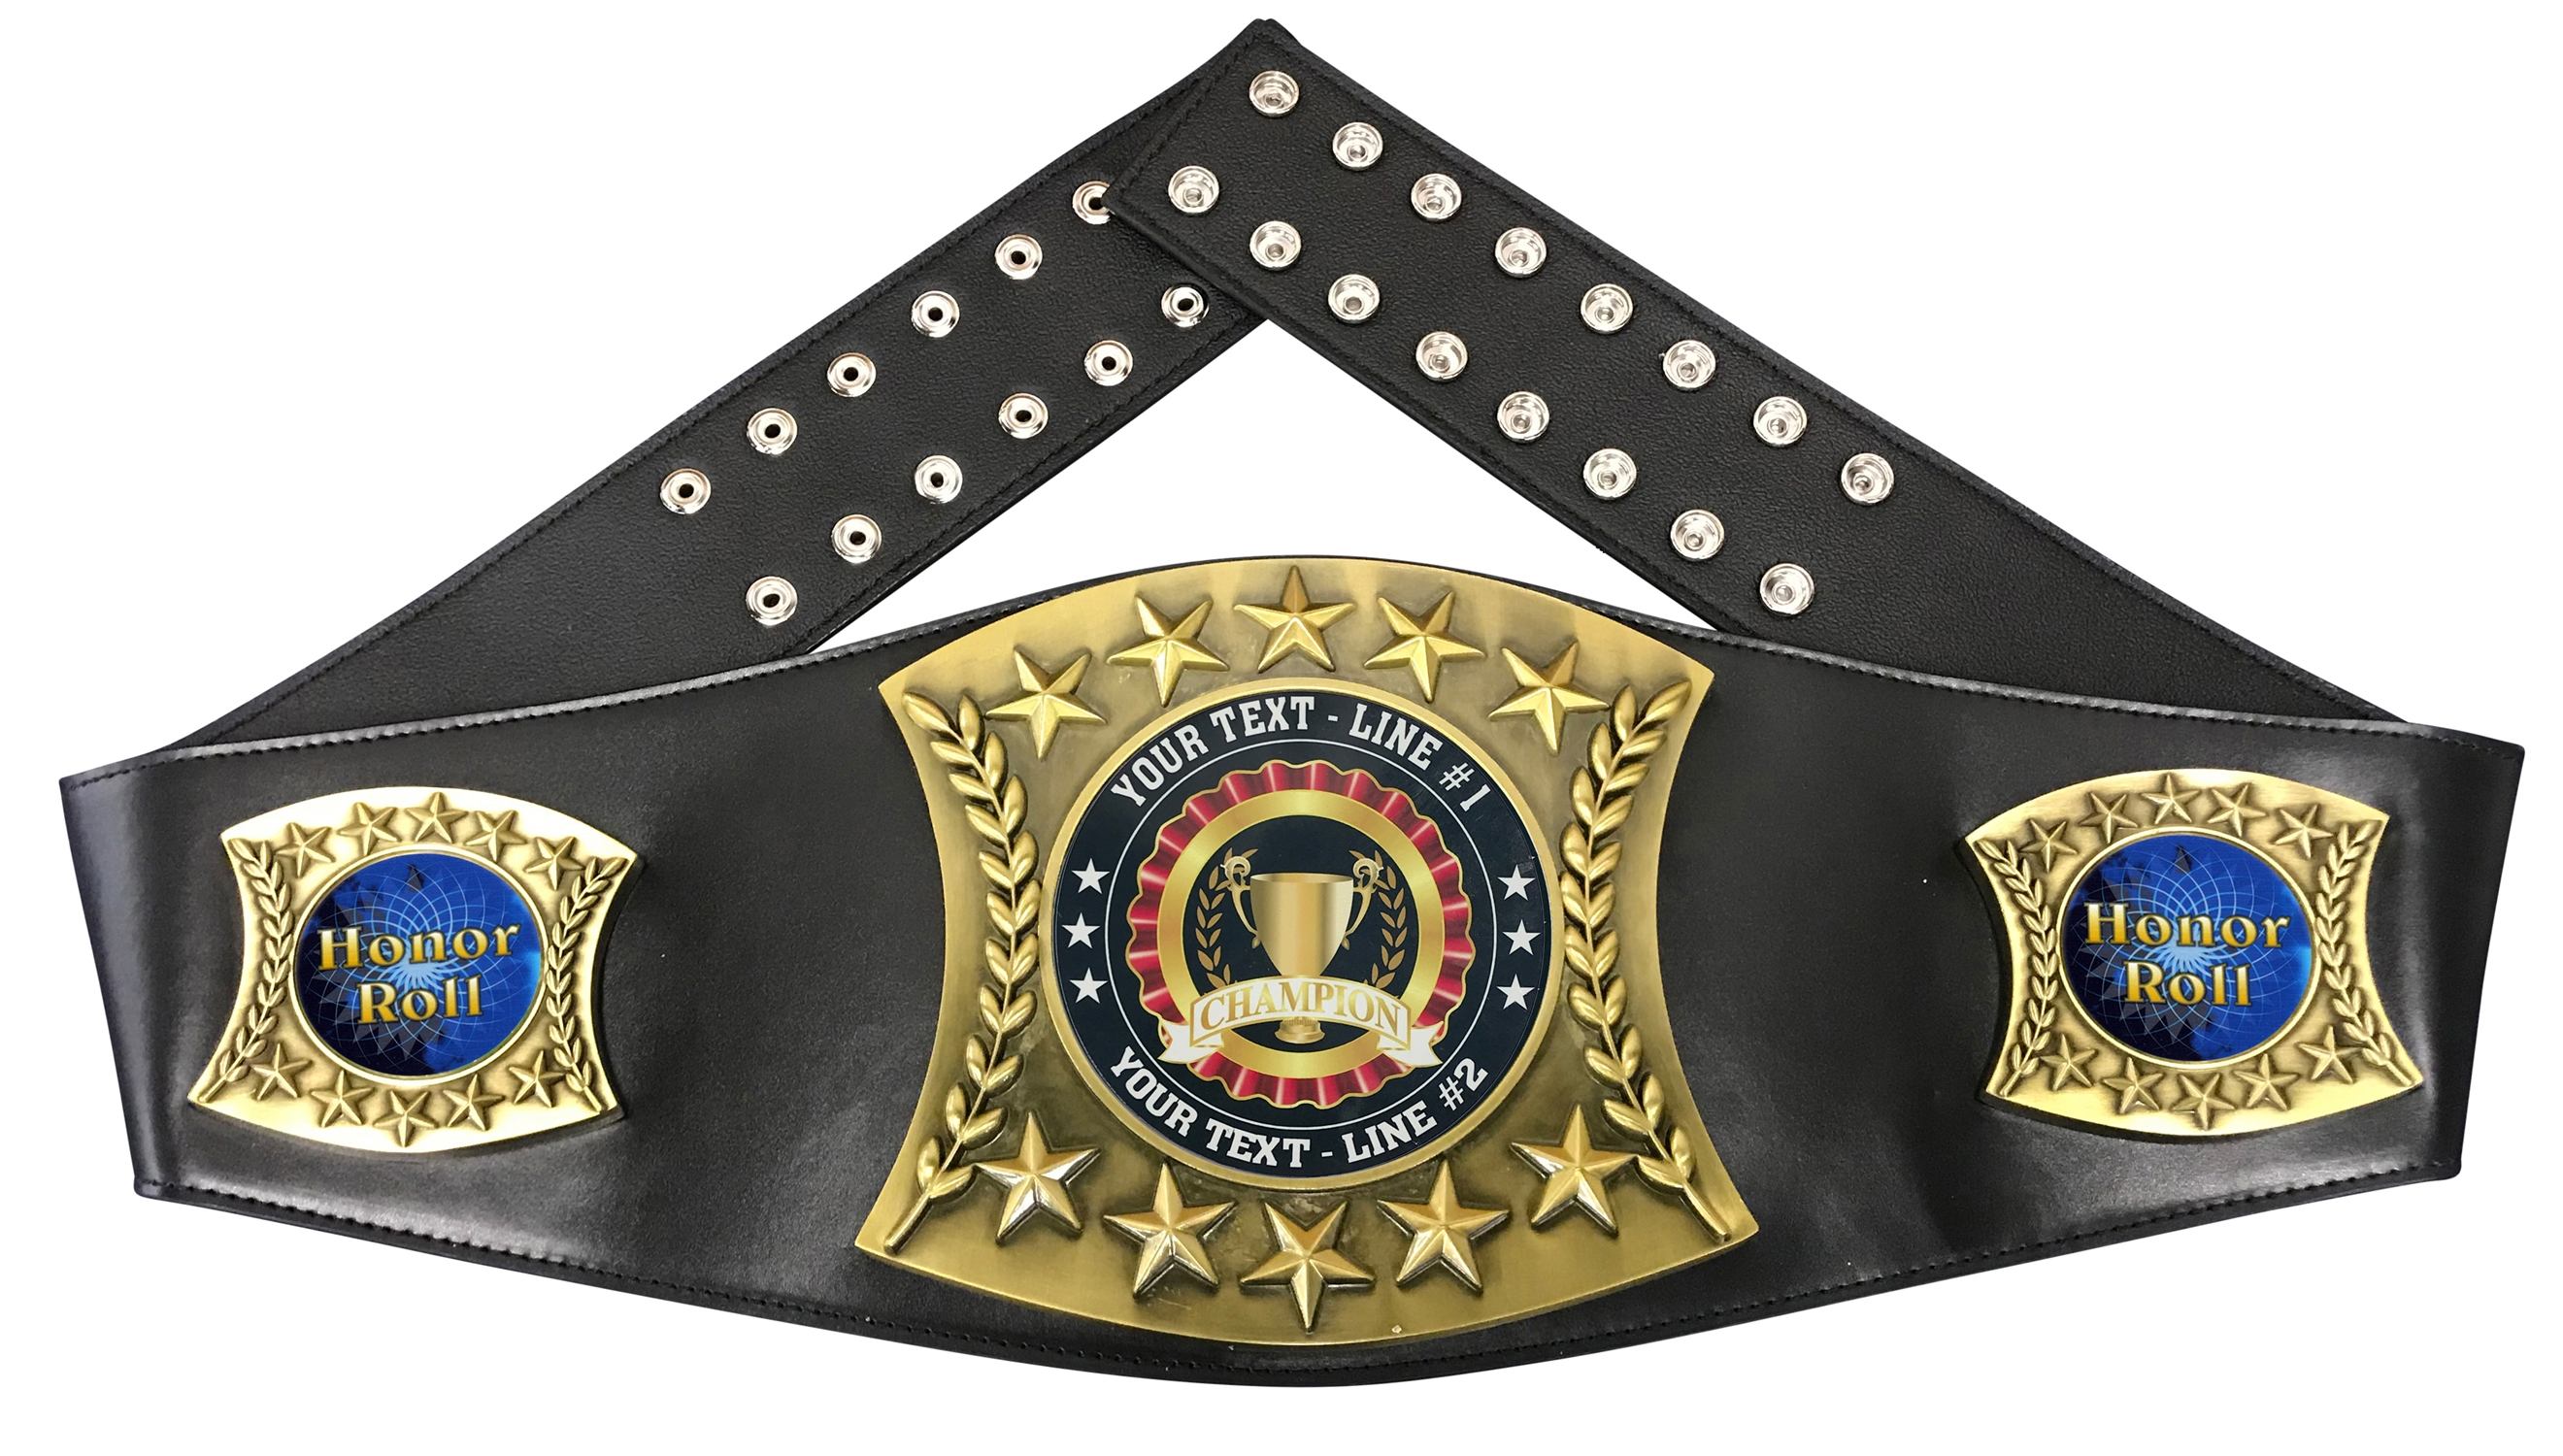 Honor Roll Personalized Championship Belt